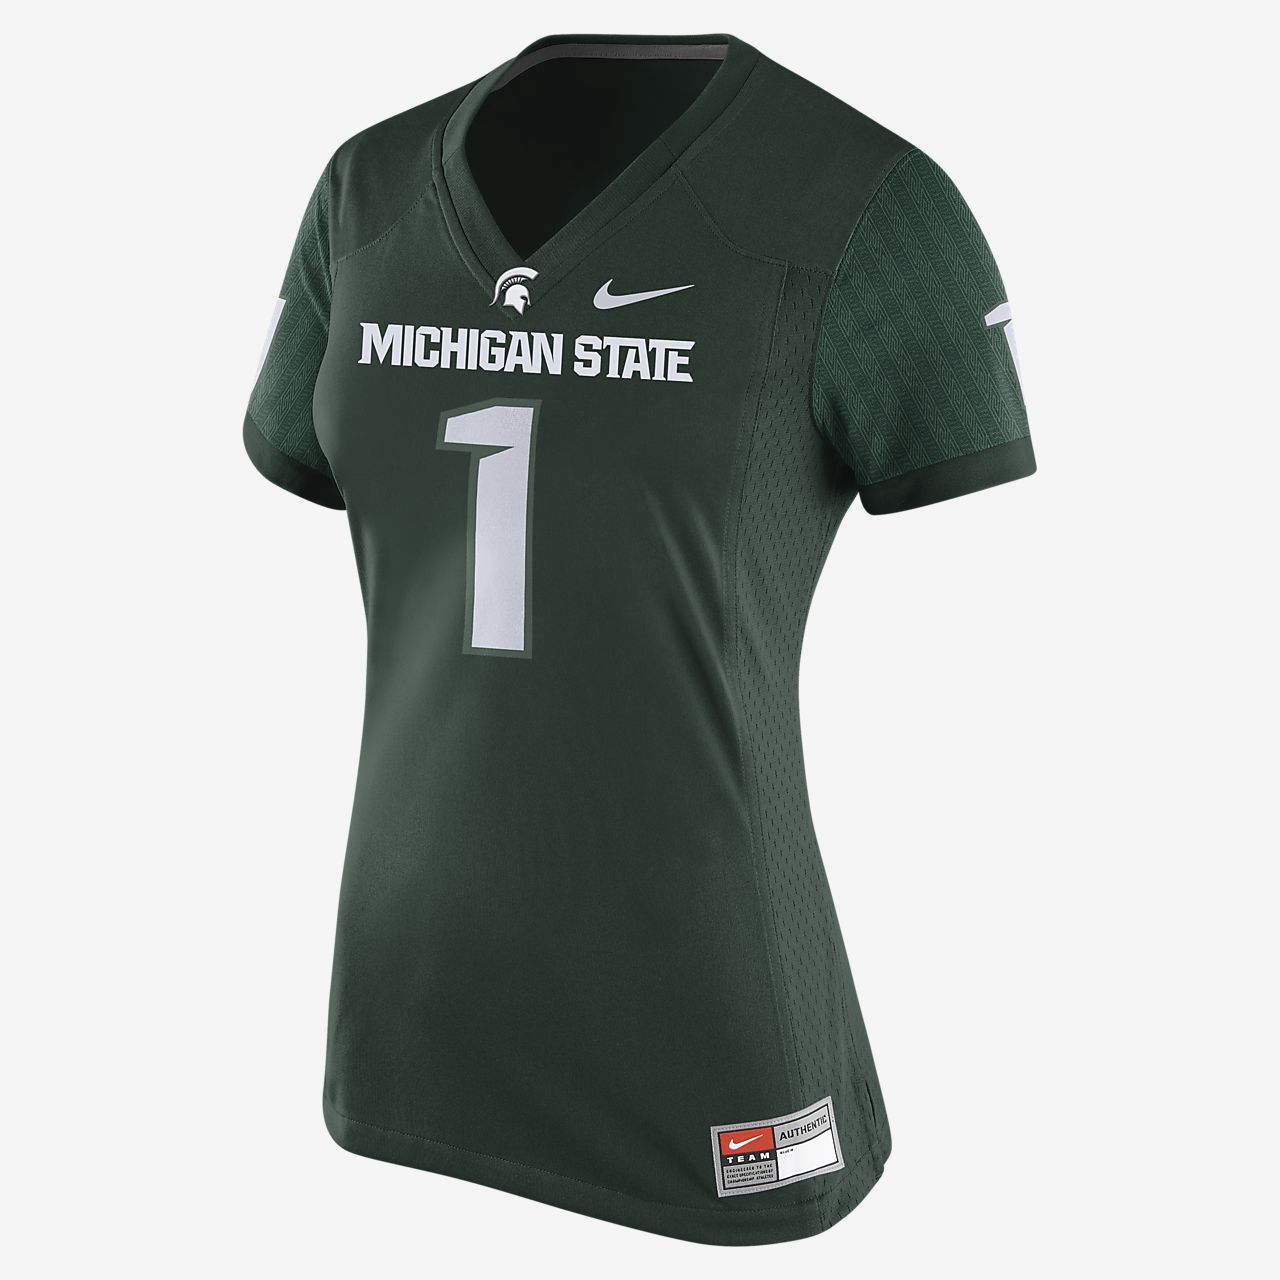 Nike College Game (Michigan State) Women's Football Jersey